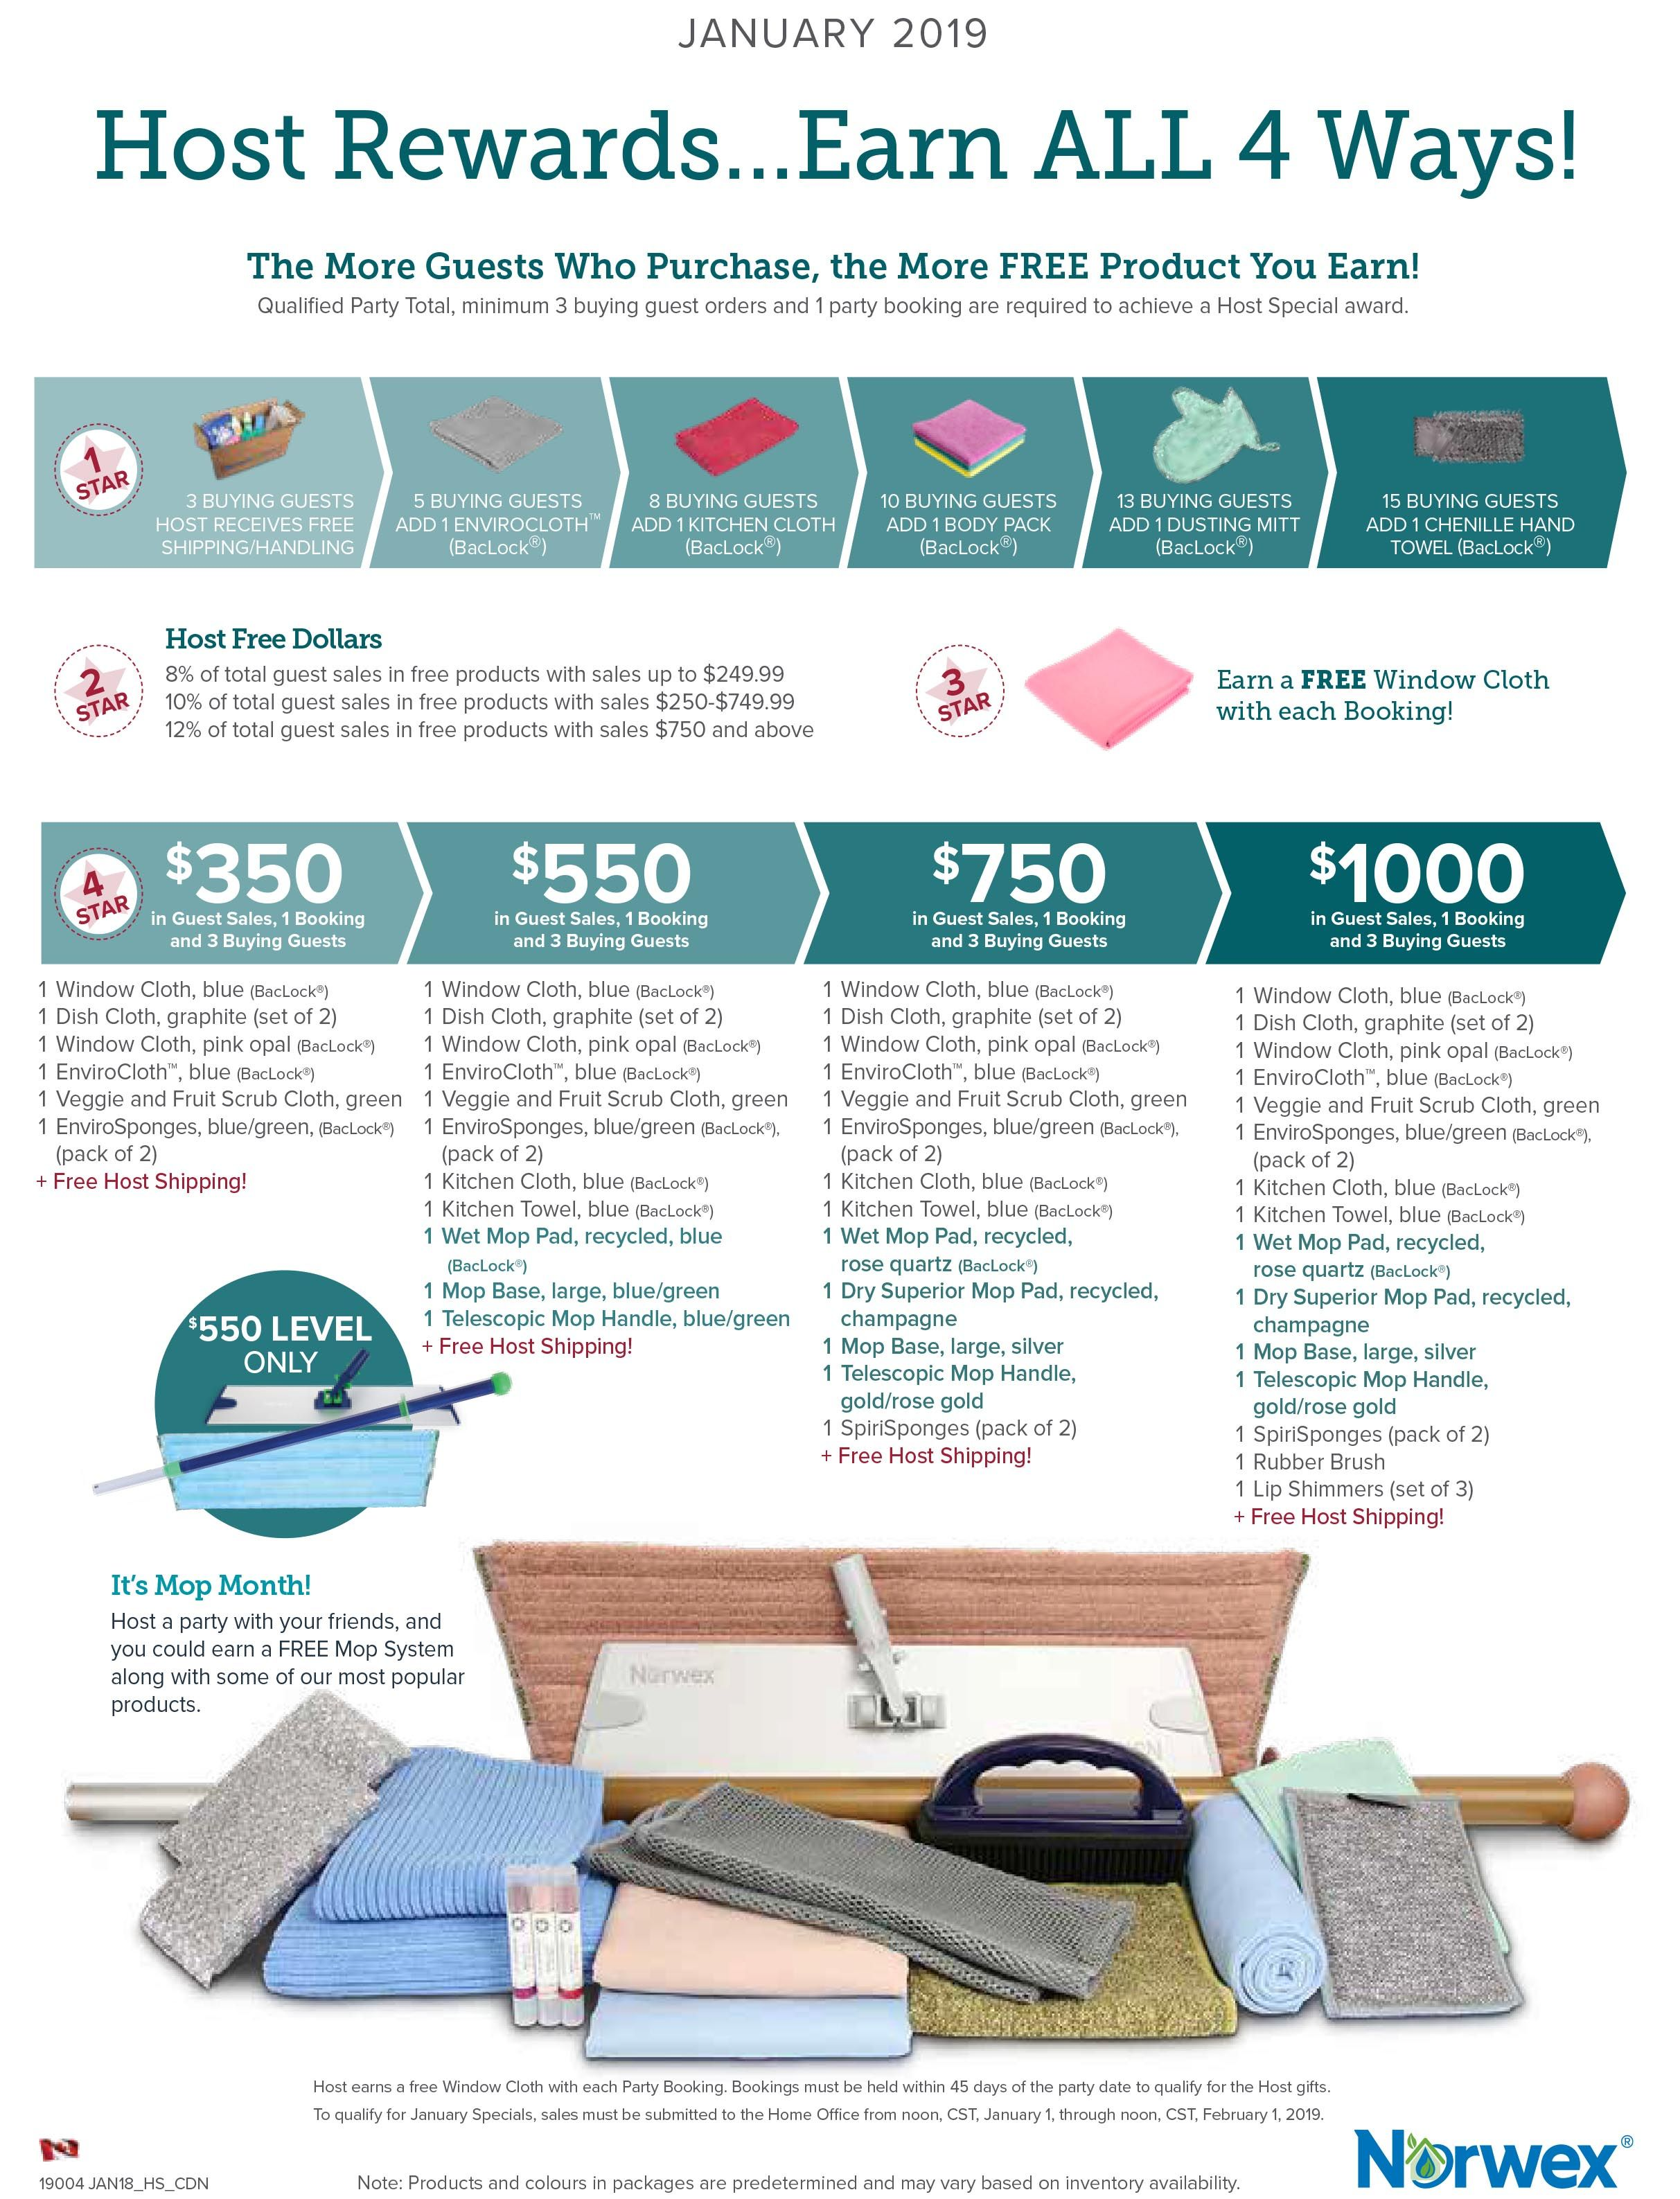 Share Norwex with family and friends in January and receive